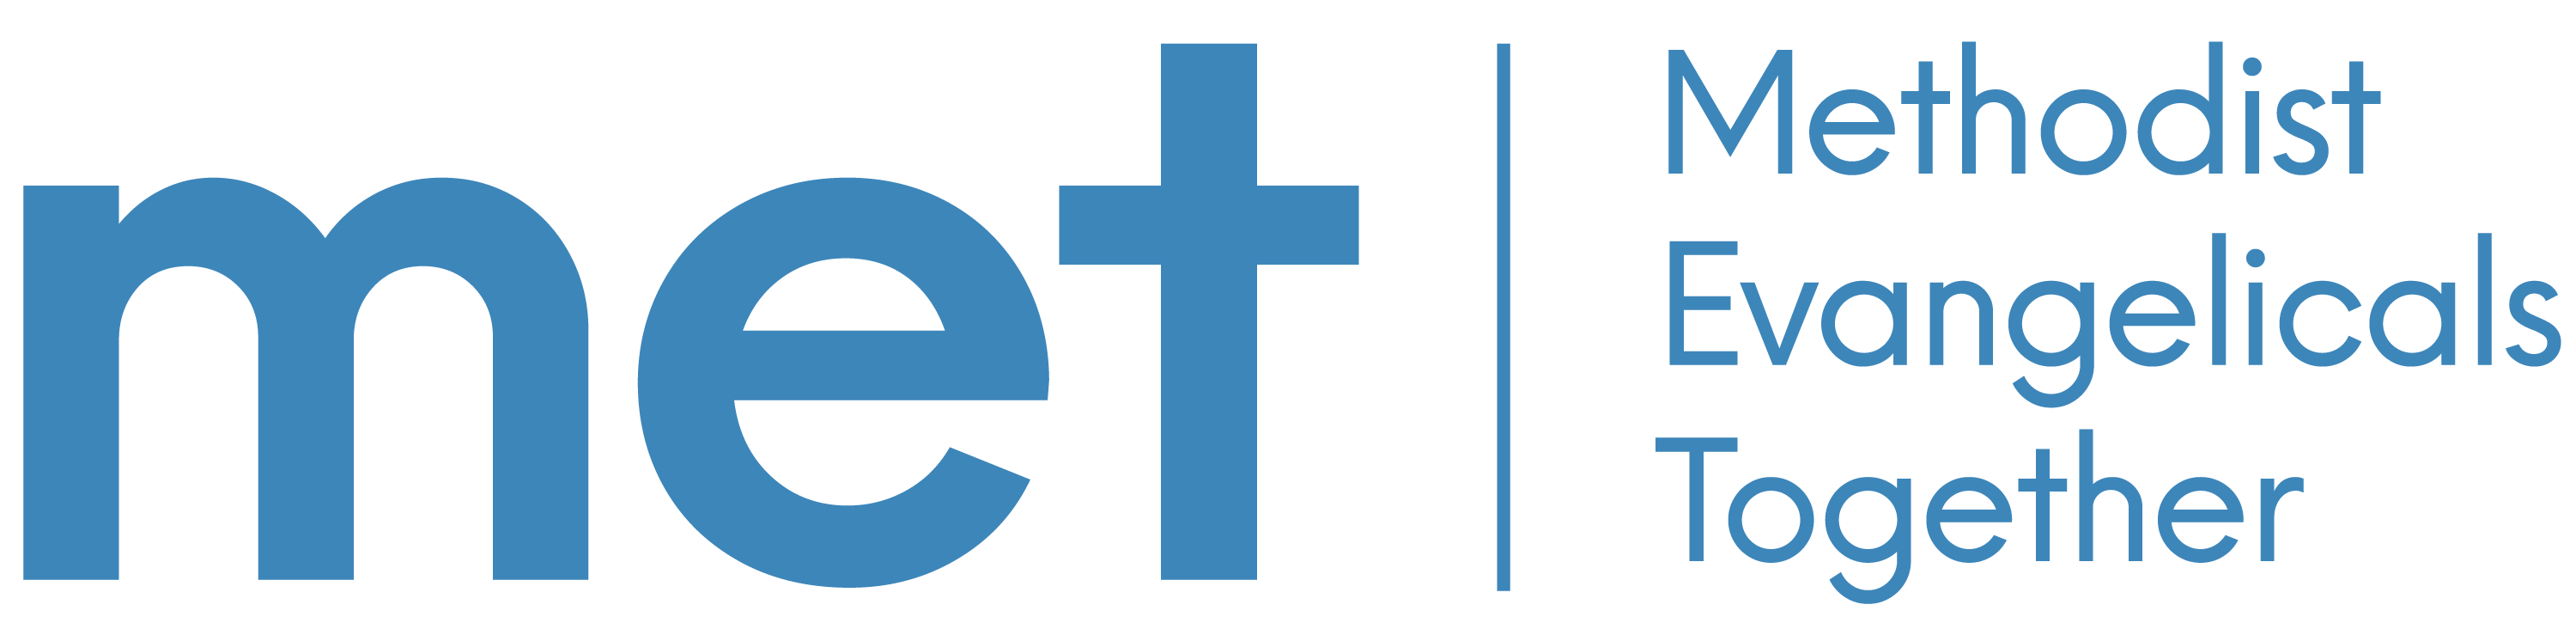 MET logo high resolution